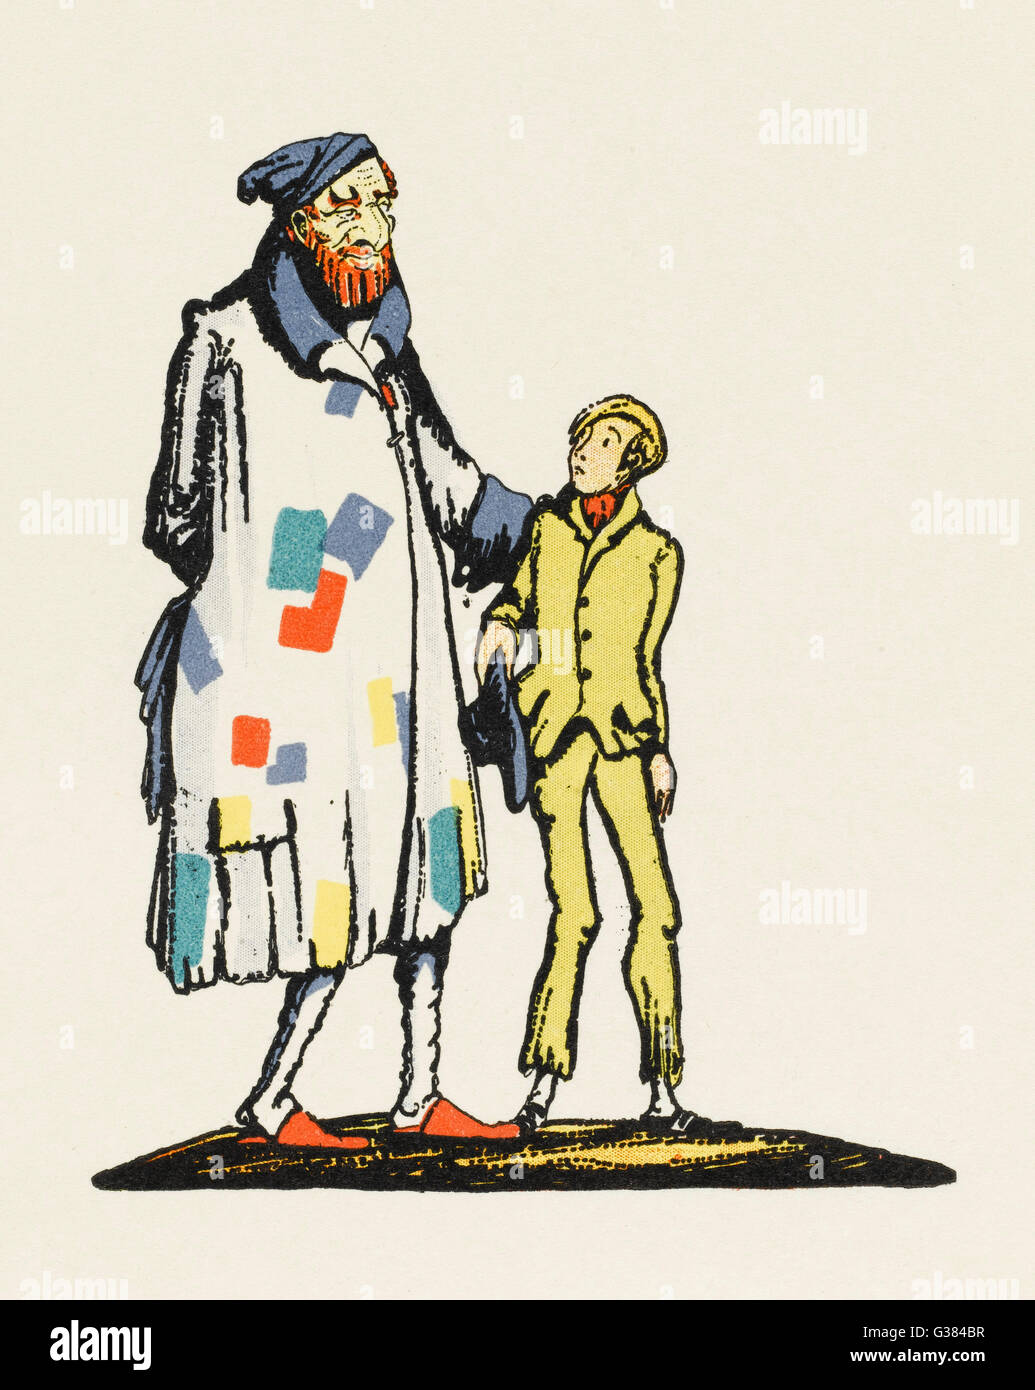 Fagin and Oliver           Date: First published: 1836-37 - Stock Image